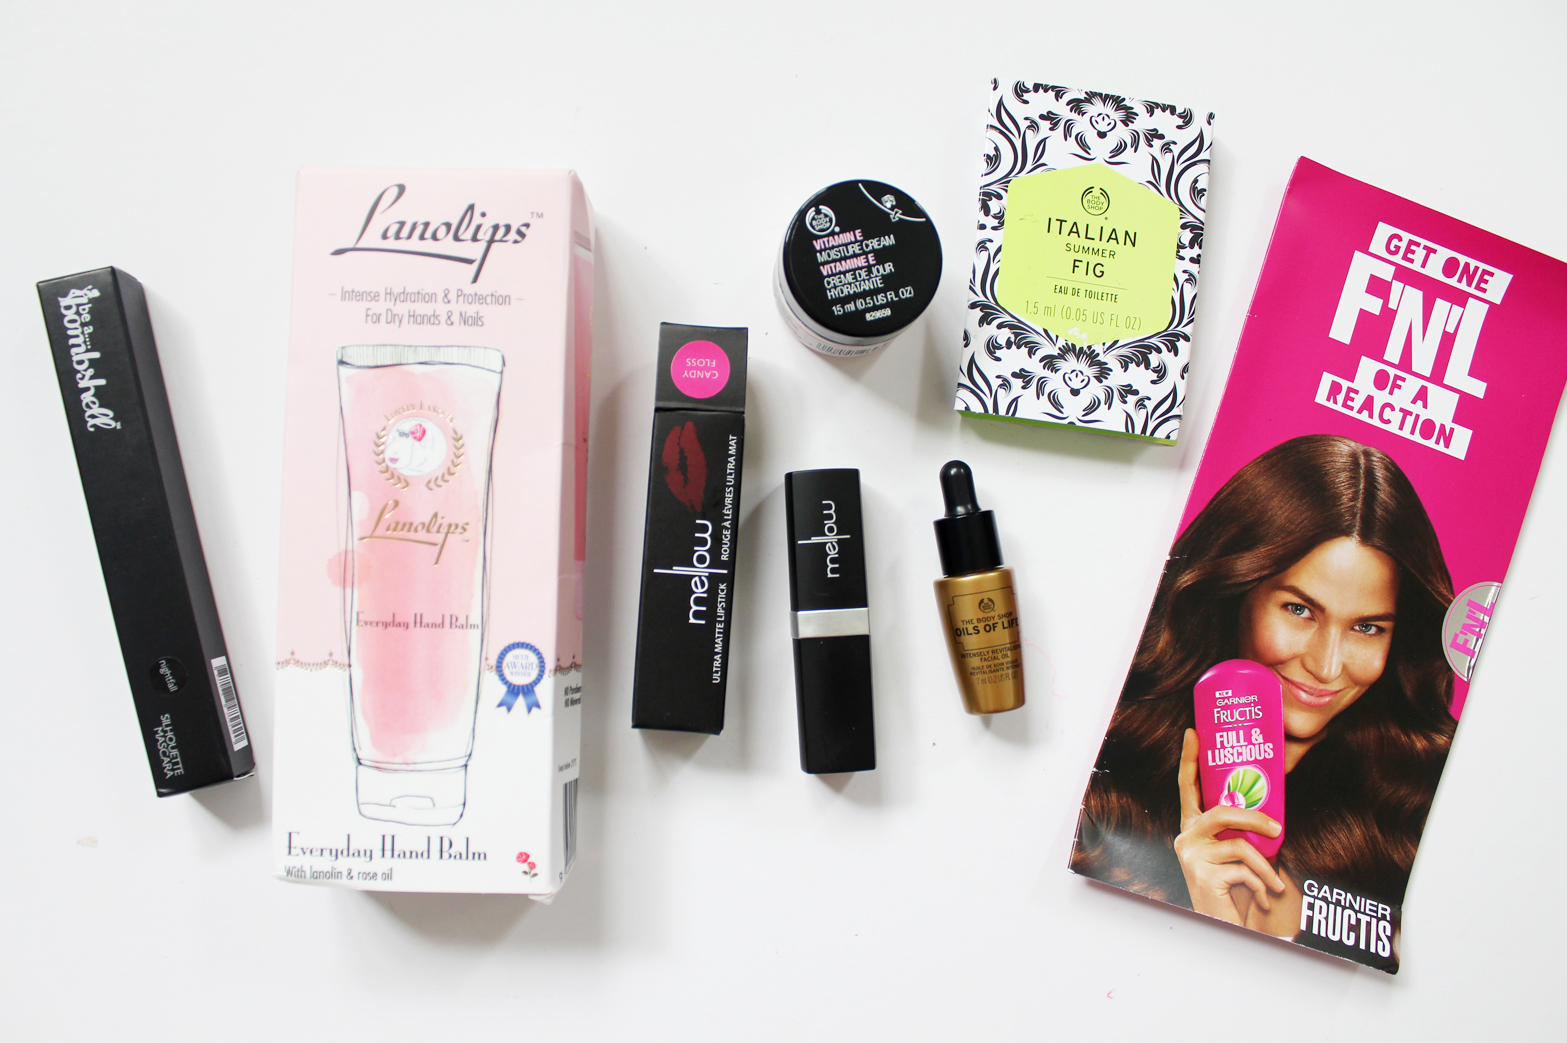 LUST HAVE IT | Women's Beauty Box February '16 - Unboxing + Initial Thoughts - CassandraMyee